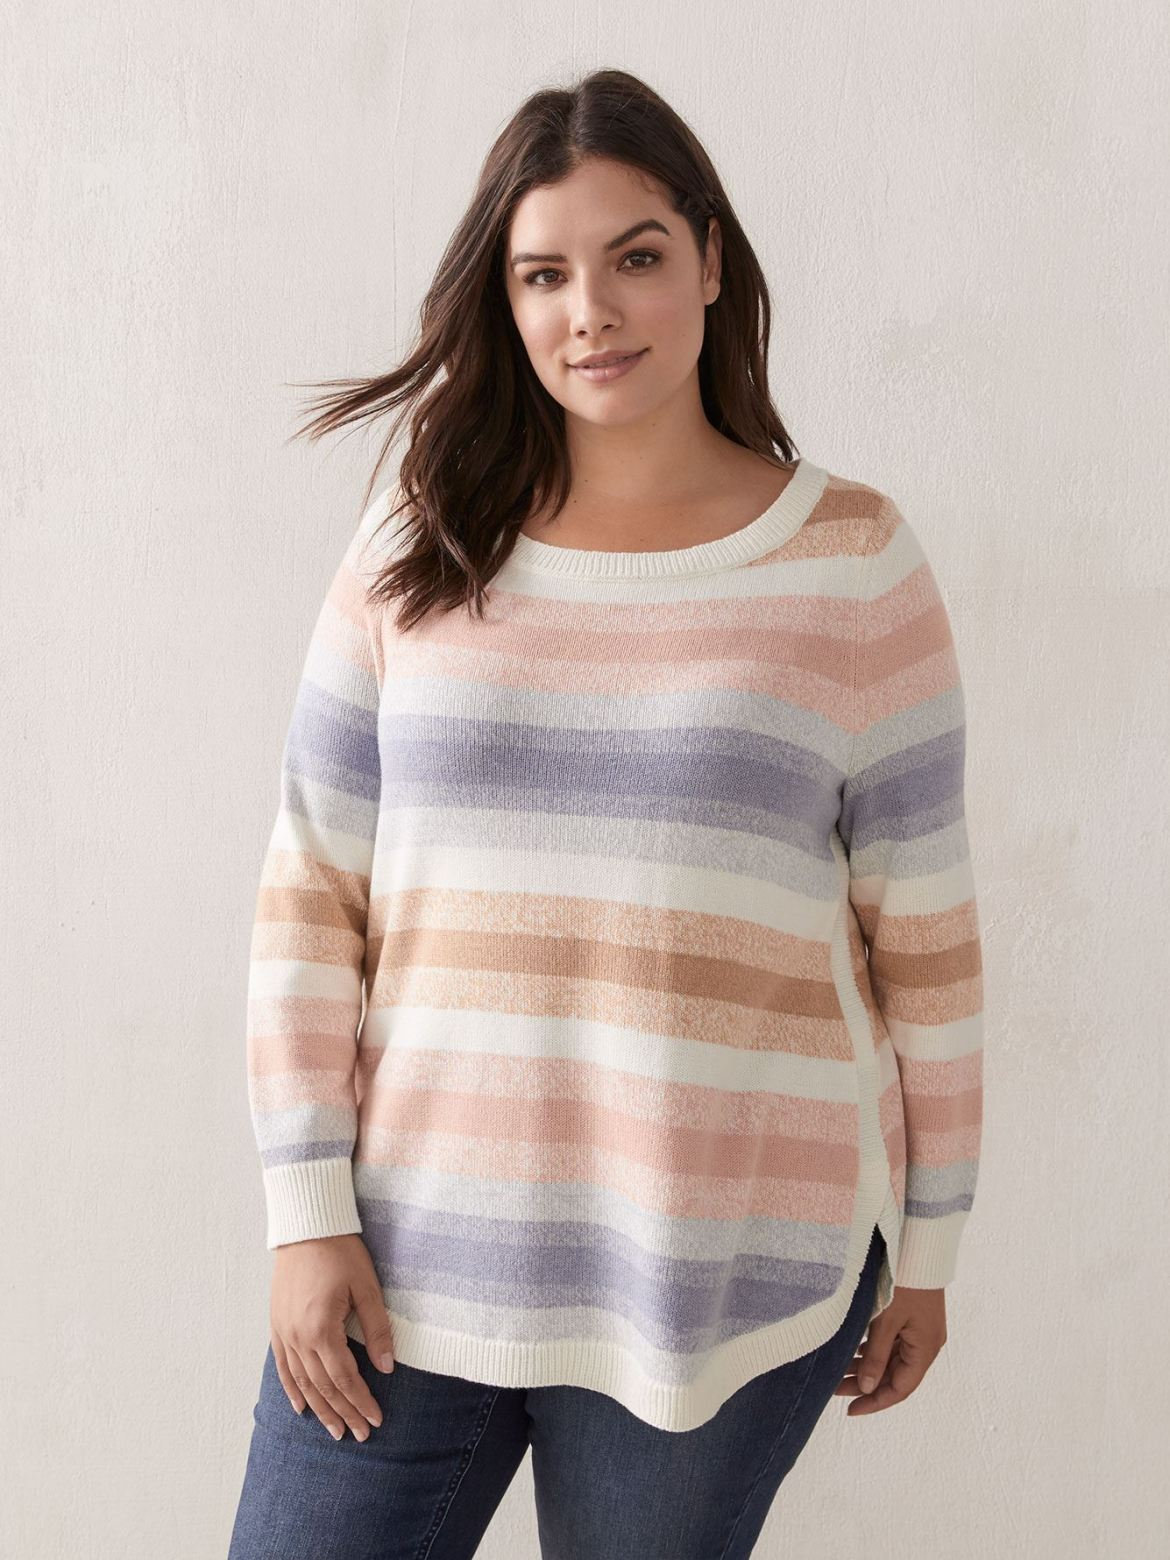 Boat Neck Sweater With Stripes - Addition Elle